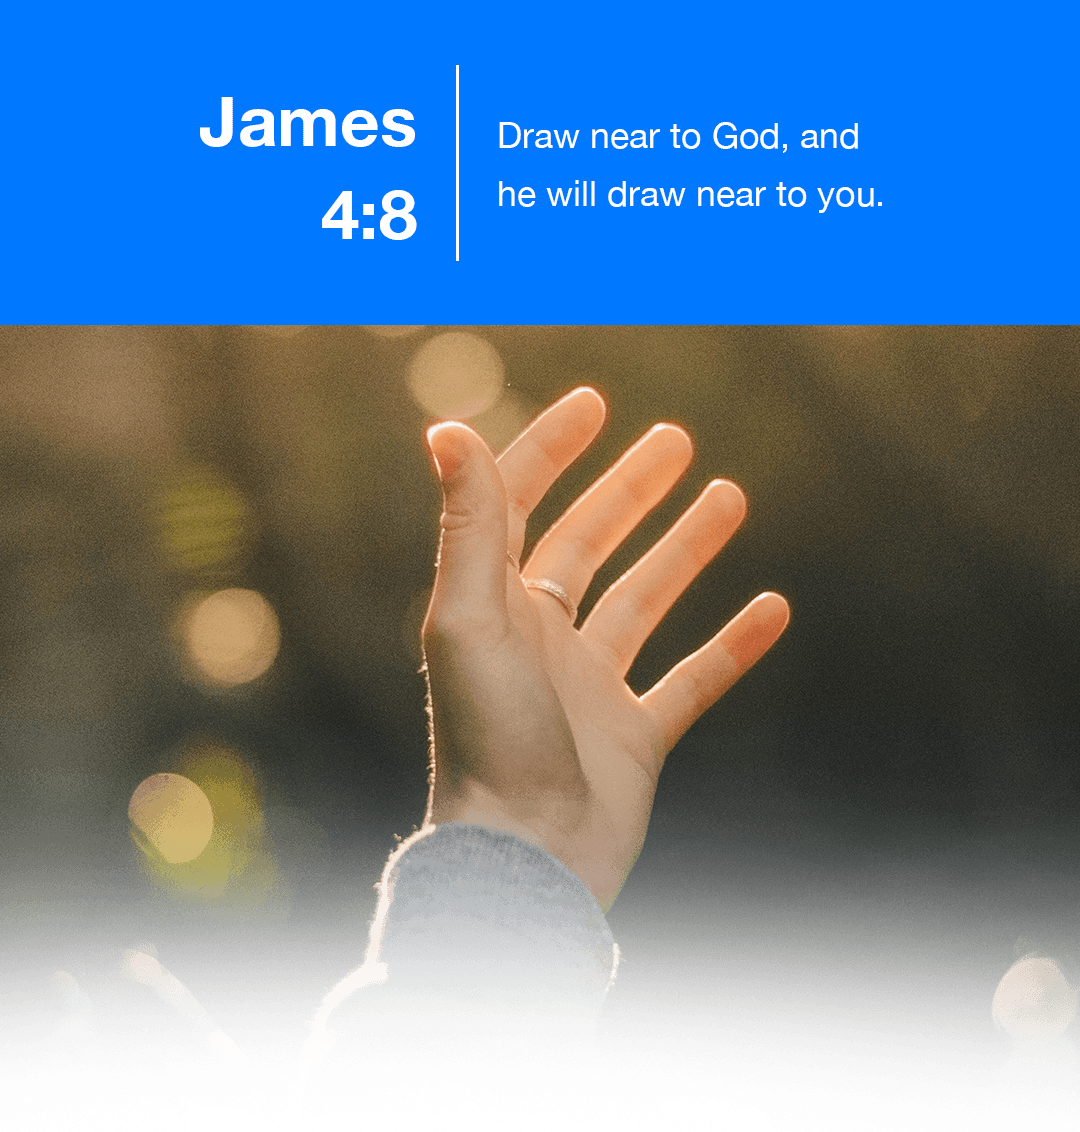 Draw near to God, and he will draw near to you. - James 4:8 - Verse Image